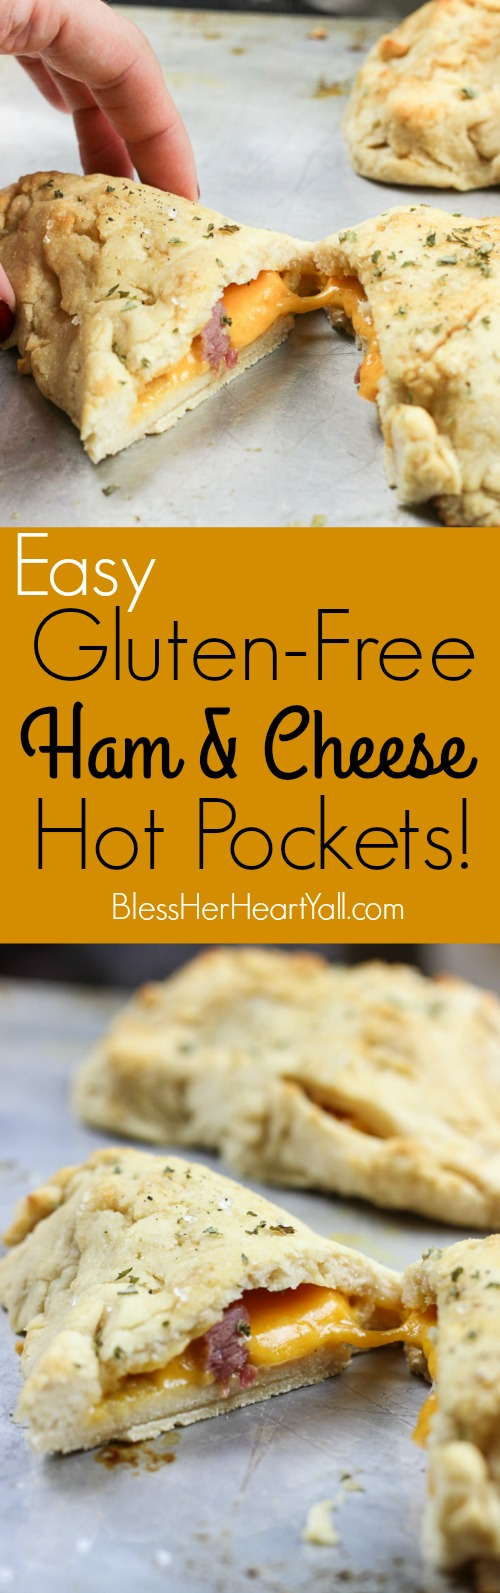 These gluten-free ham and cheese hot pockets (or calzones, or hand pies) are so easy and tasty!  Perfectly crispy pockets of smooth soft dough are stuffed with leftover Christmas ham leftovers and melty cheese, closed up, and brushed with an olive oil, honey, brown sugar, and garlic sauce.  It's the perfect tasty meal on-the-go and a great way to finish off those Christmas ham leftovers! www.blessherheartyall.com